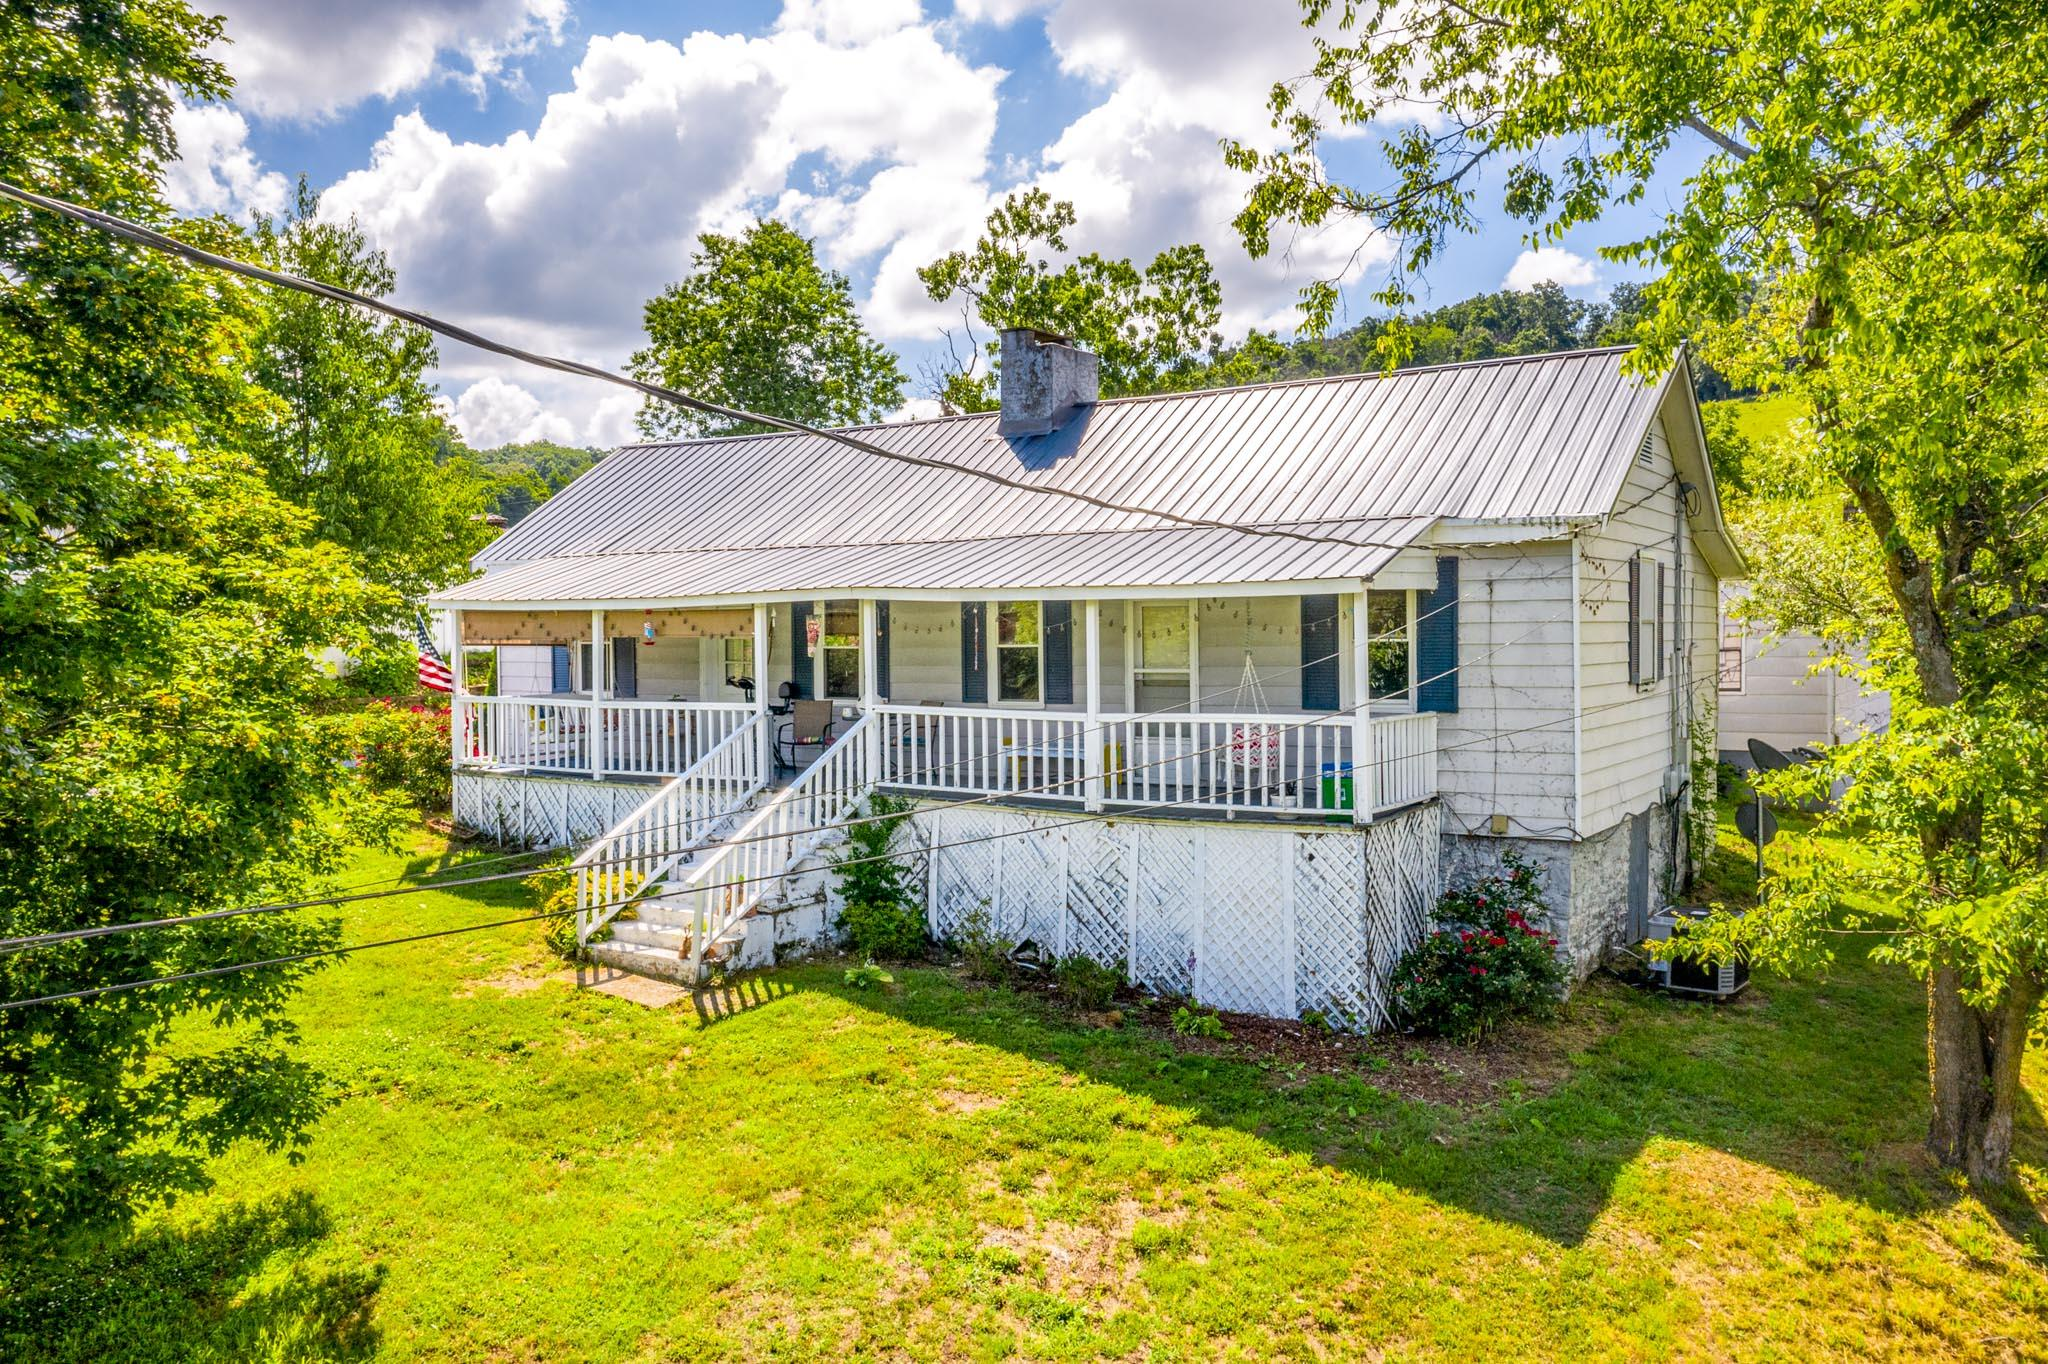 977 Old Knoxville, Greeneville, Tennessee, United States 37743, 2 Bedrooms Bedrooms, ,2 BathroomsBathrooms,Single Family,For Sale,Old Knoxville,1122916